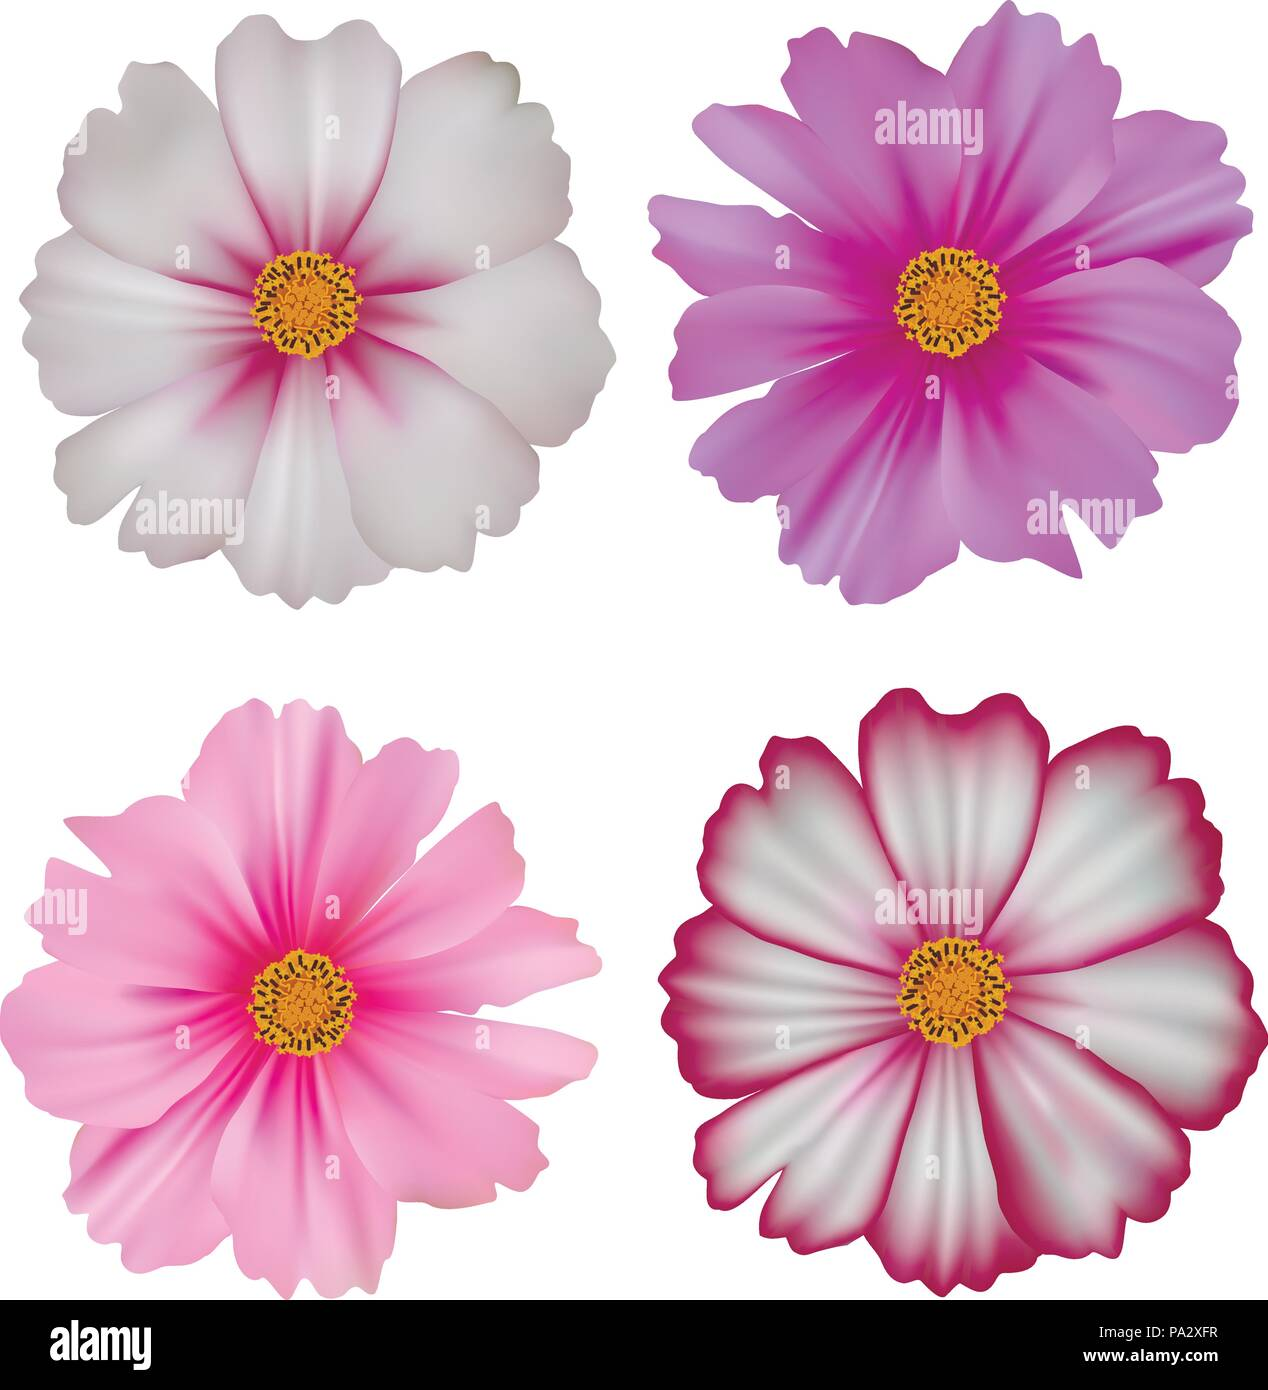 Set of cosmos flowers isolated on white background - Stock Vector